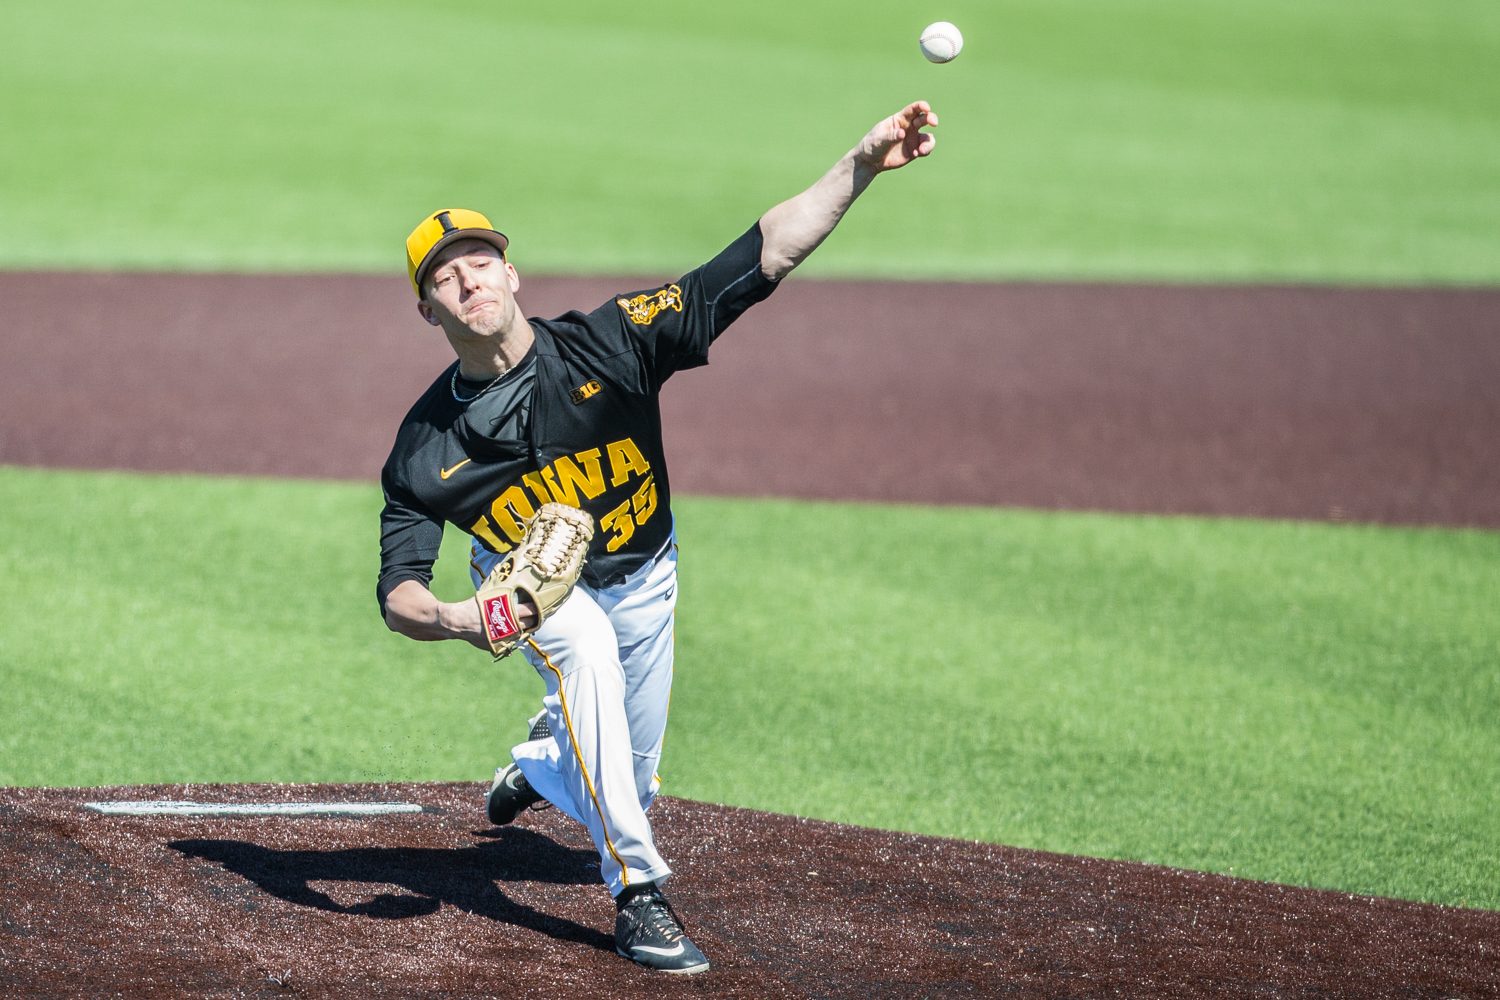 Iowa+pitcher+Cam+Baumann+throws+a+pitch+during+the+first+game+of+a+baseball+doubleheader+between+Iowa+and+Cal-State+Northridge+at+Duane+Banks+Field+on+Sunday%2C+March+17%2C+2019.+The+Hawkeyes+defeated+the+Matadors%2C+5-4.